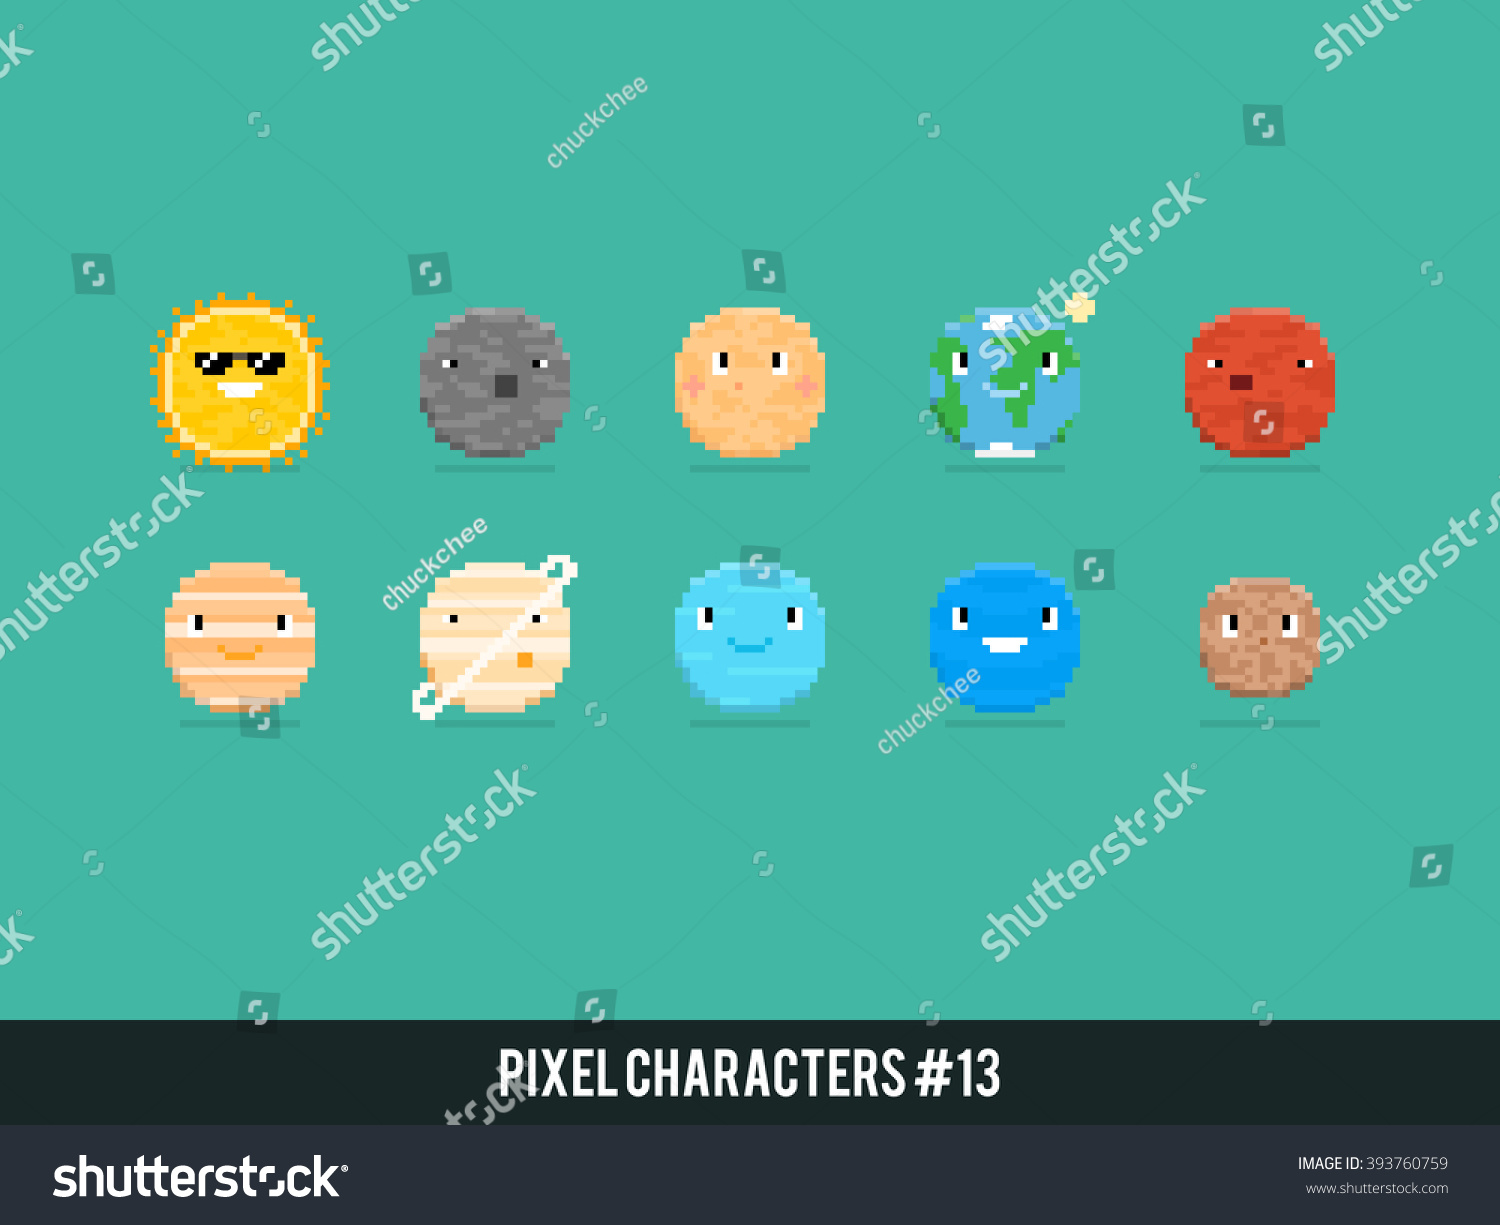 Set planets solar system cartoon style flat icon stock vector image - Pixel Art Characters Solar System Planets Stock Vector